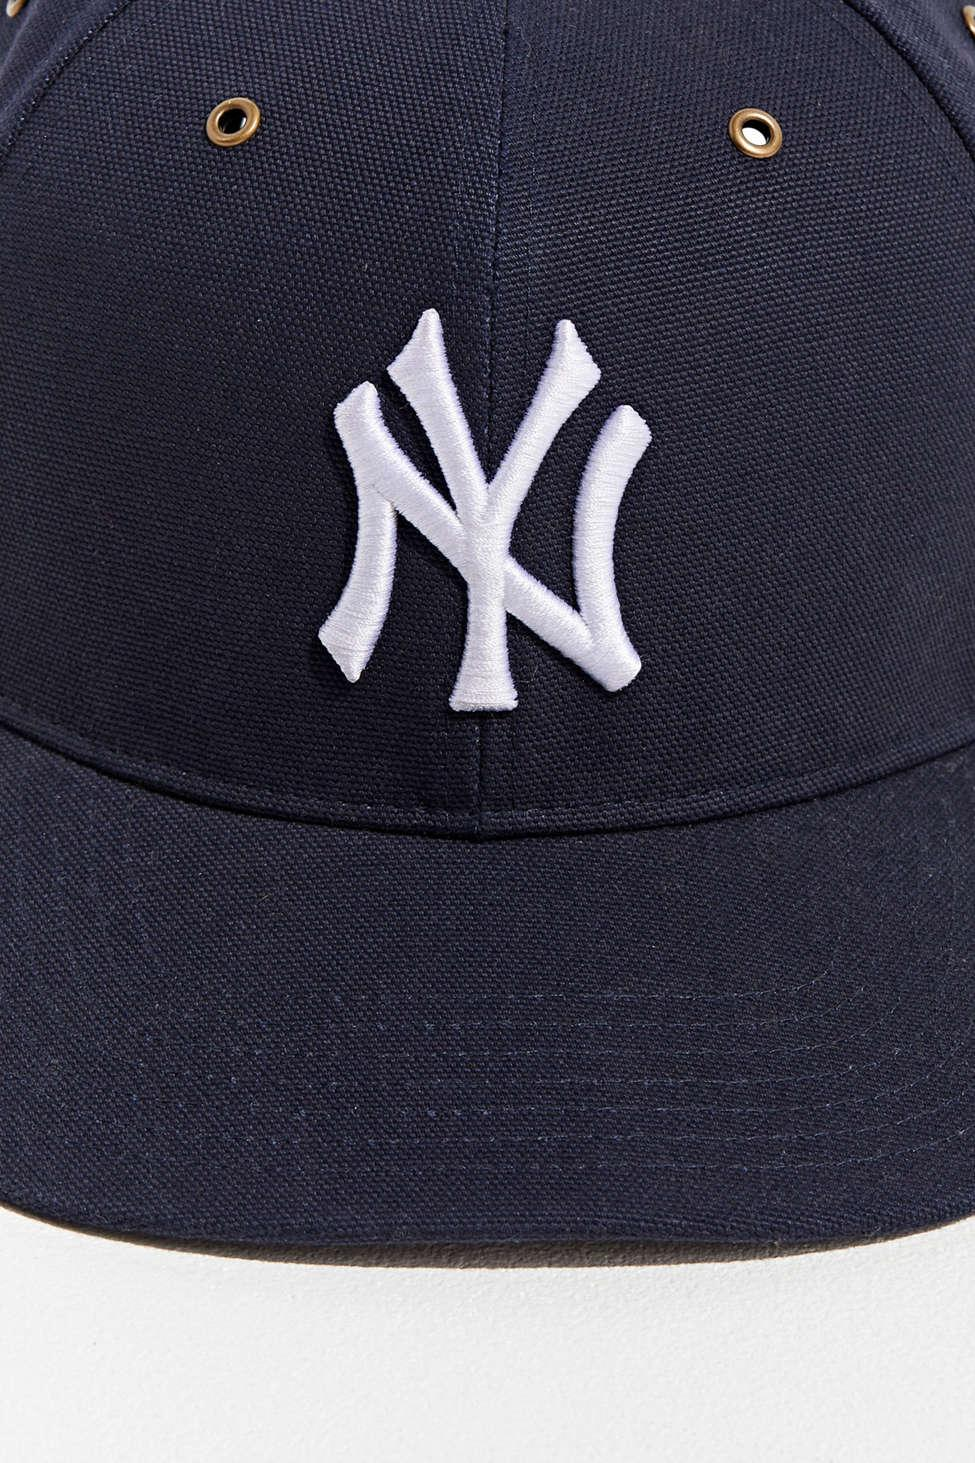 a53e65c7f 47 Brand X Carhartt New York Yankees Dad Snapback Hat in Blue for ...